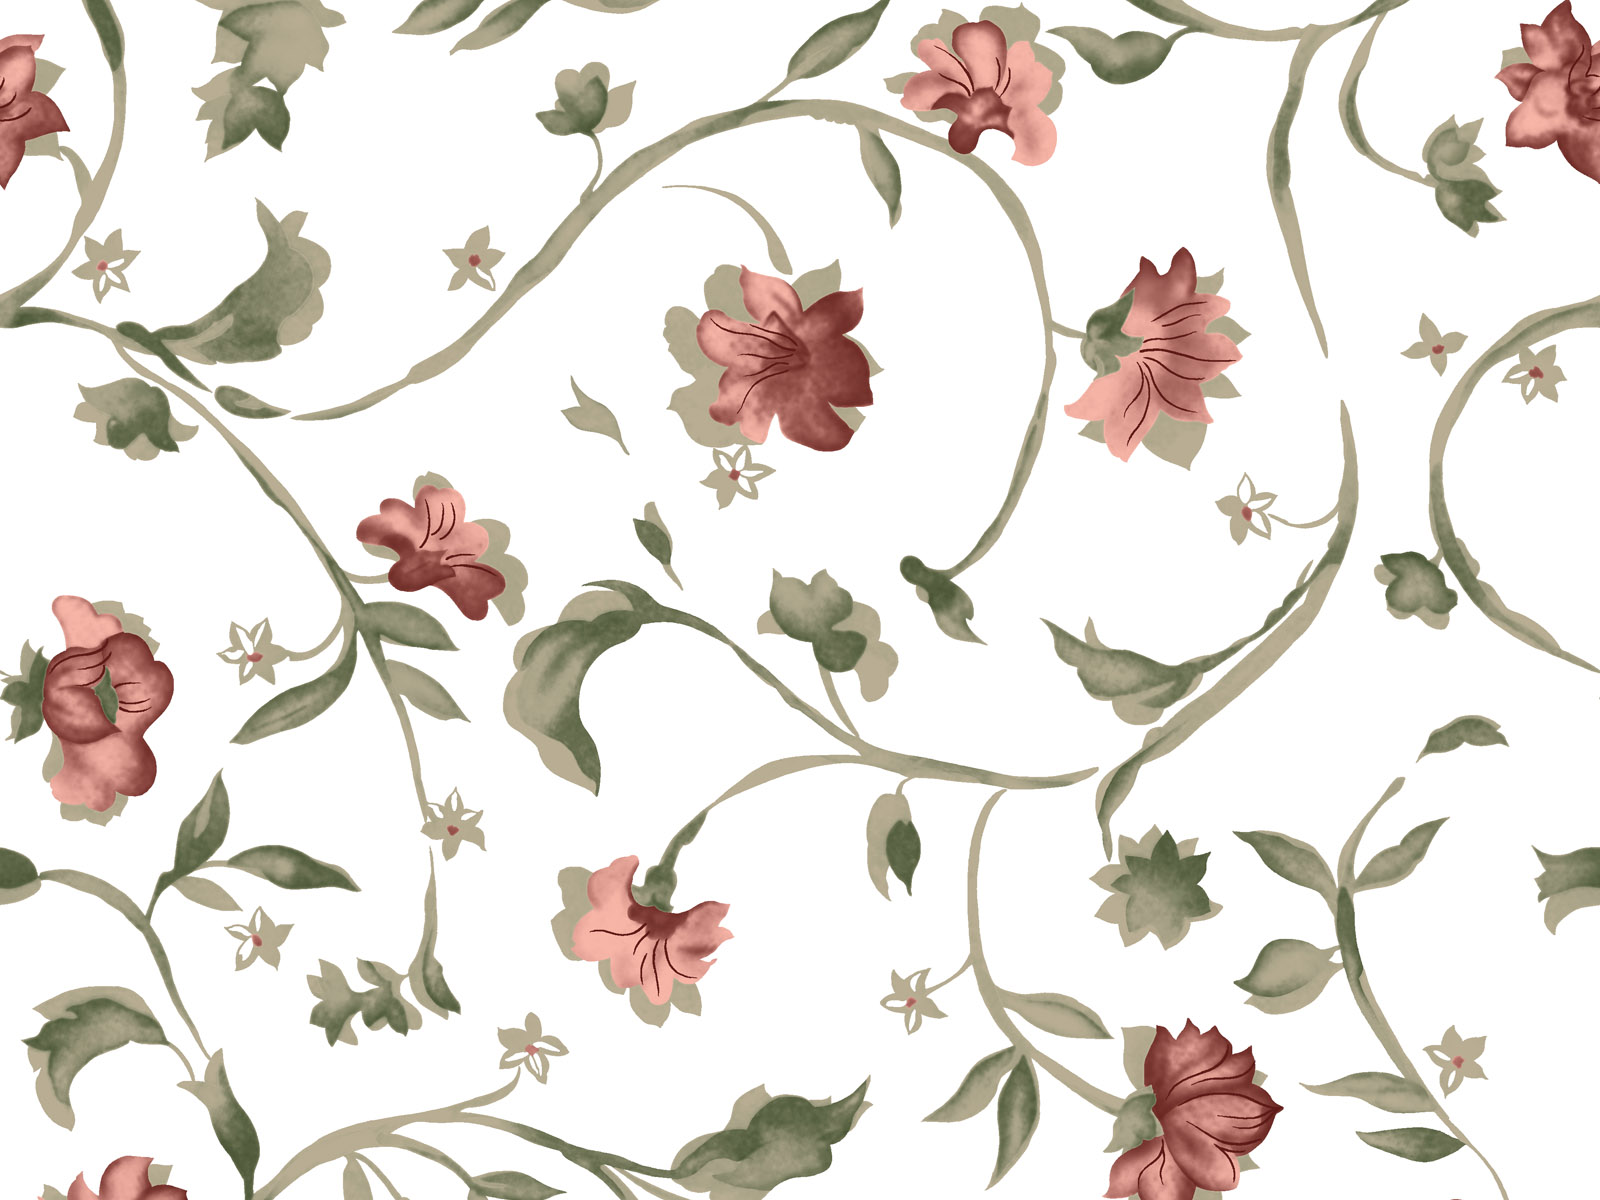 Background wallpaper pattern pattern 2605